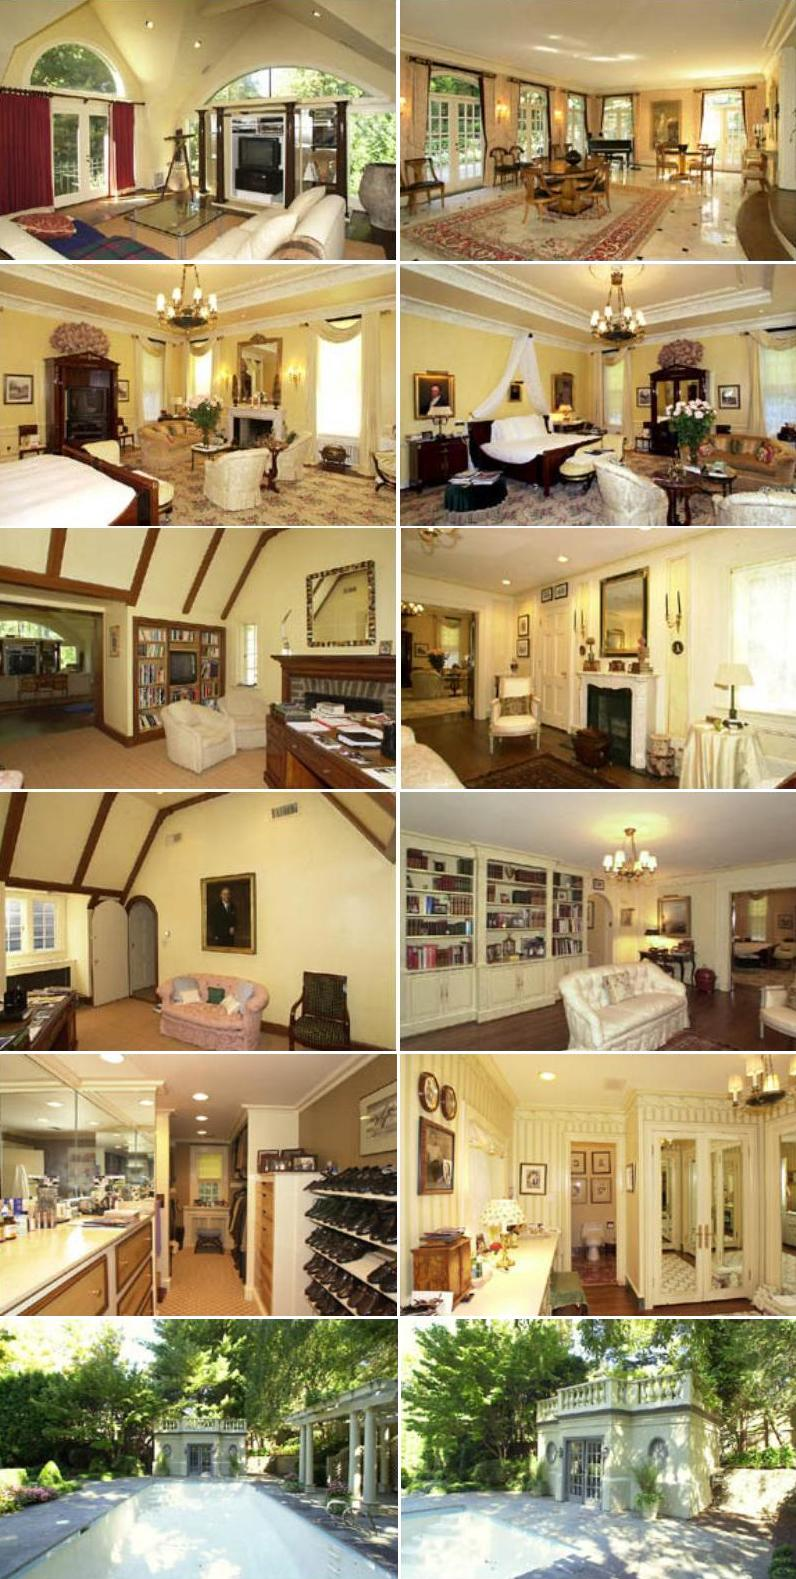 Tim Russert home profile - Tim Russert's house in Washington DC - pictures